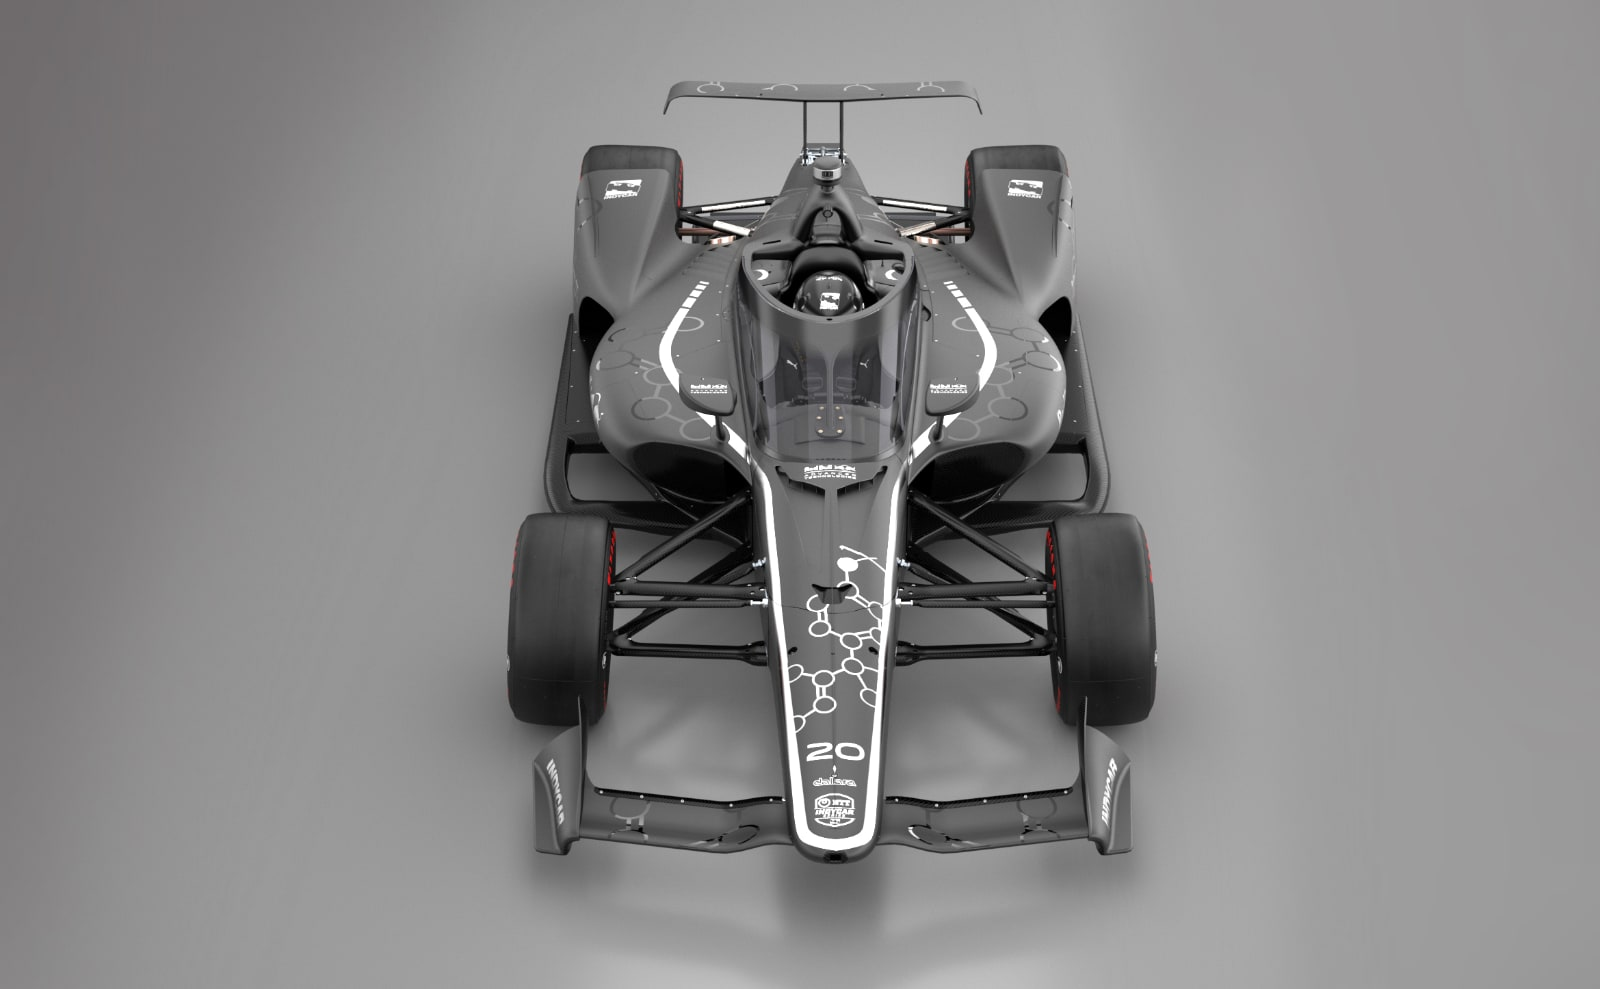 Red Bull Aeroscreen rendering on Indy car